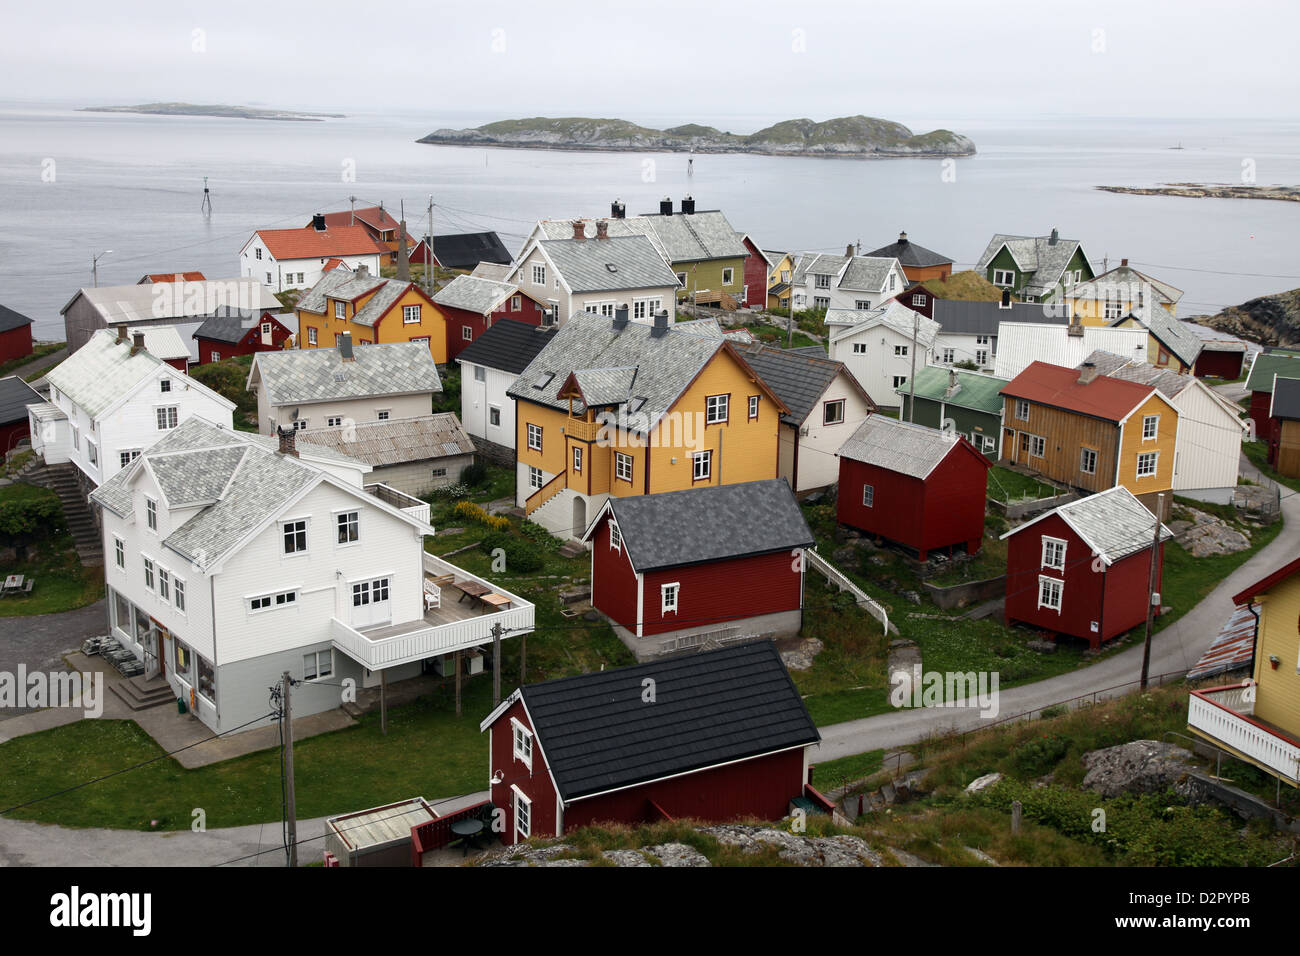 Once a small fishing village on the island of Ona, now summer cabins, Ona, Sandoy, Norway Stock Photo